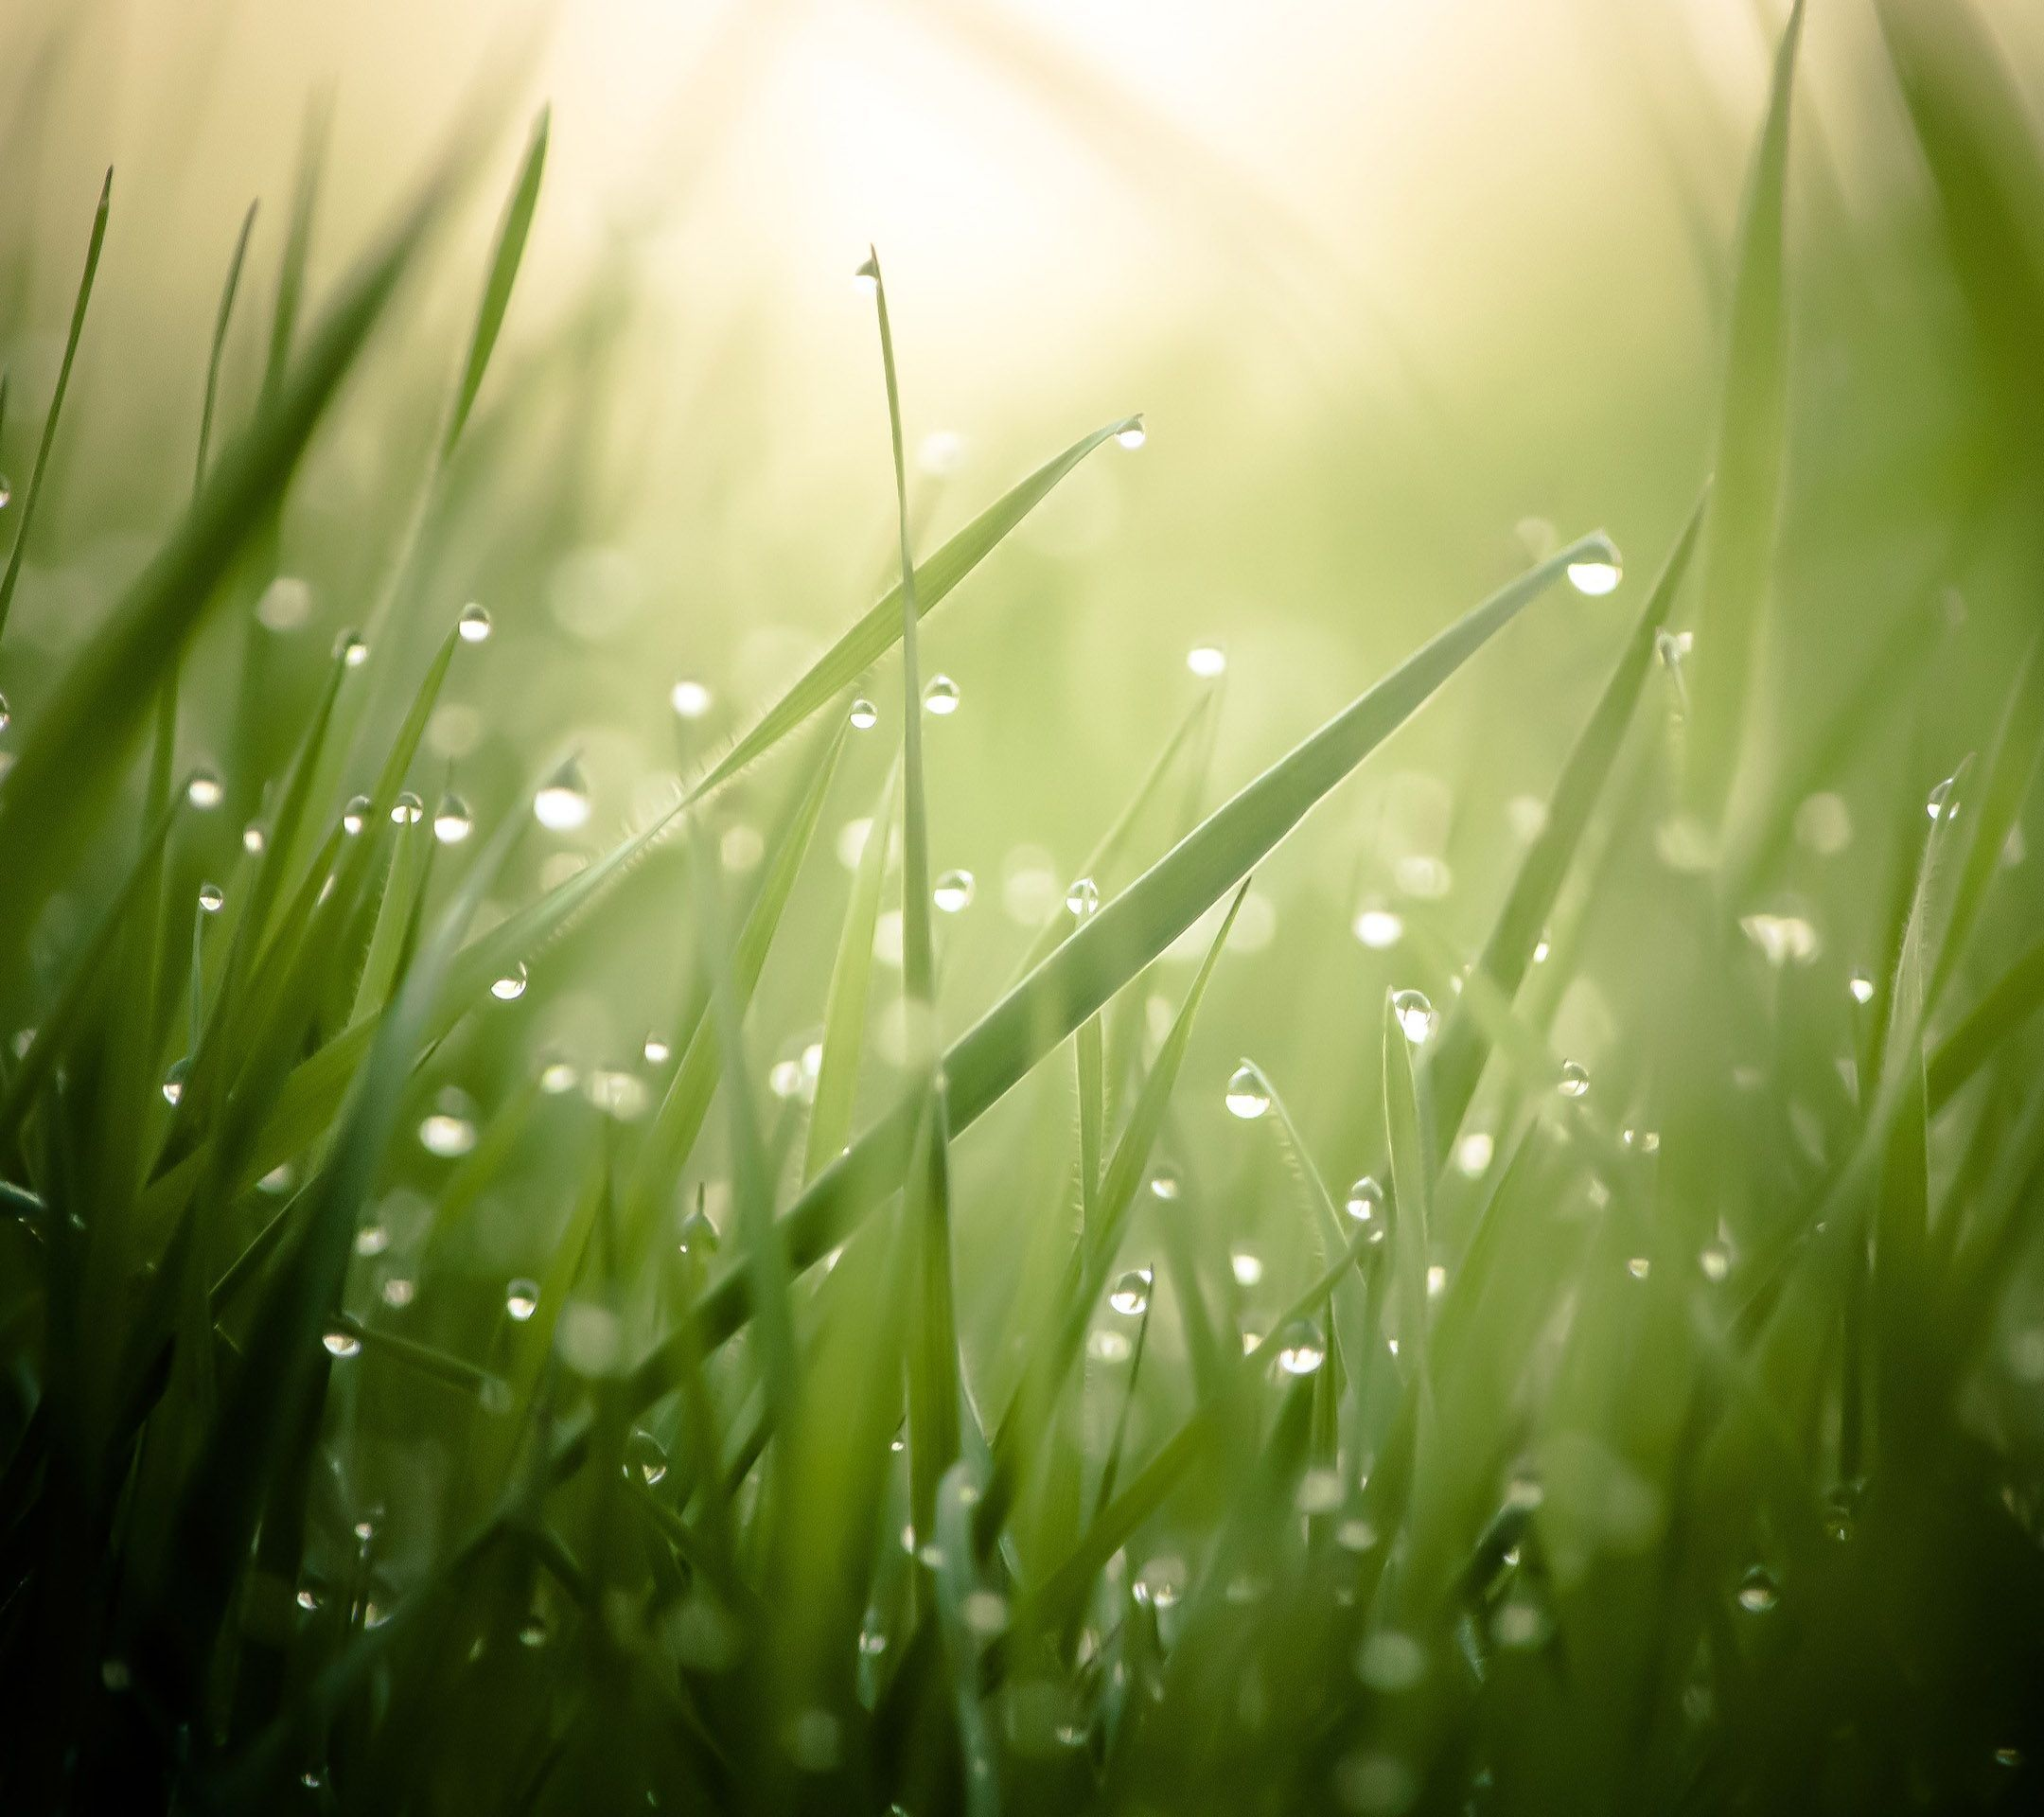 Beautiful Nature Wallpaper For Android: Nature Water Drop And Morning Dew. Tap To See More